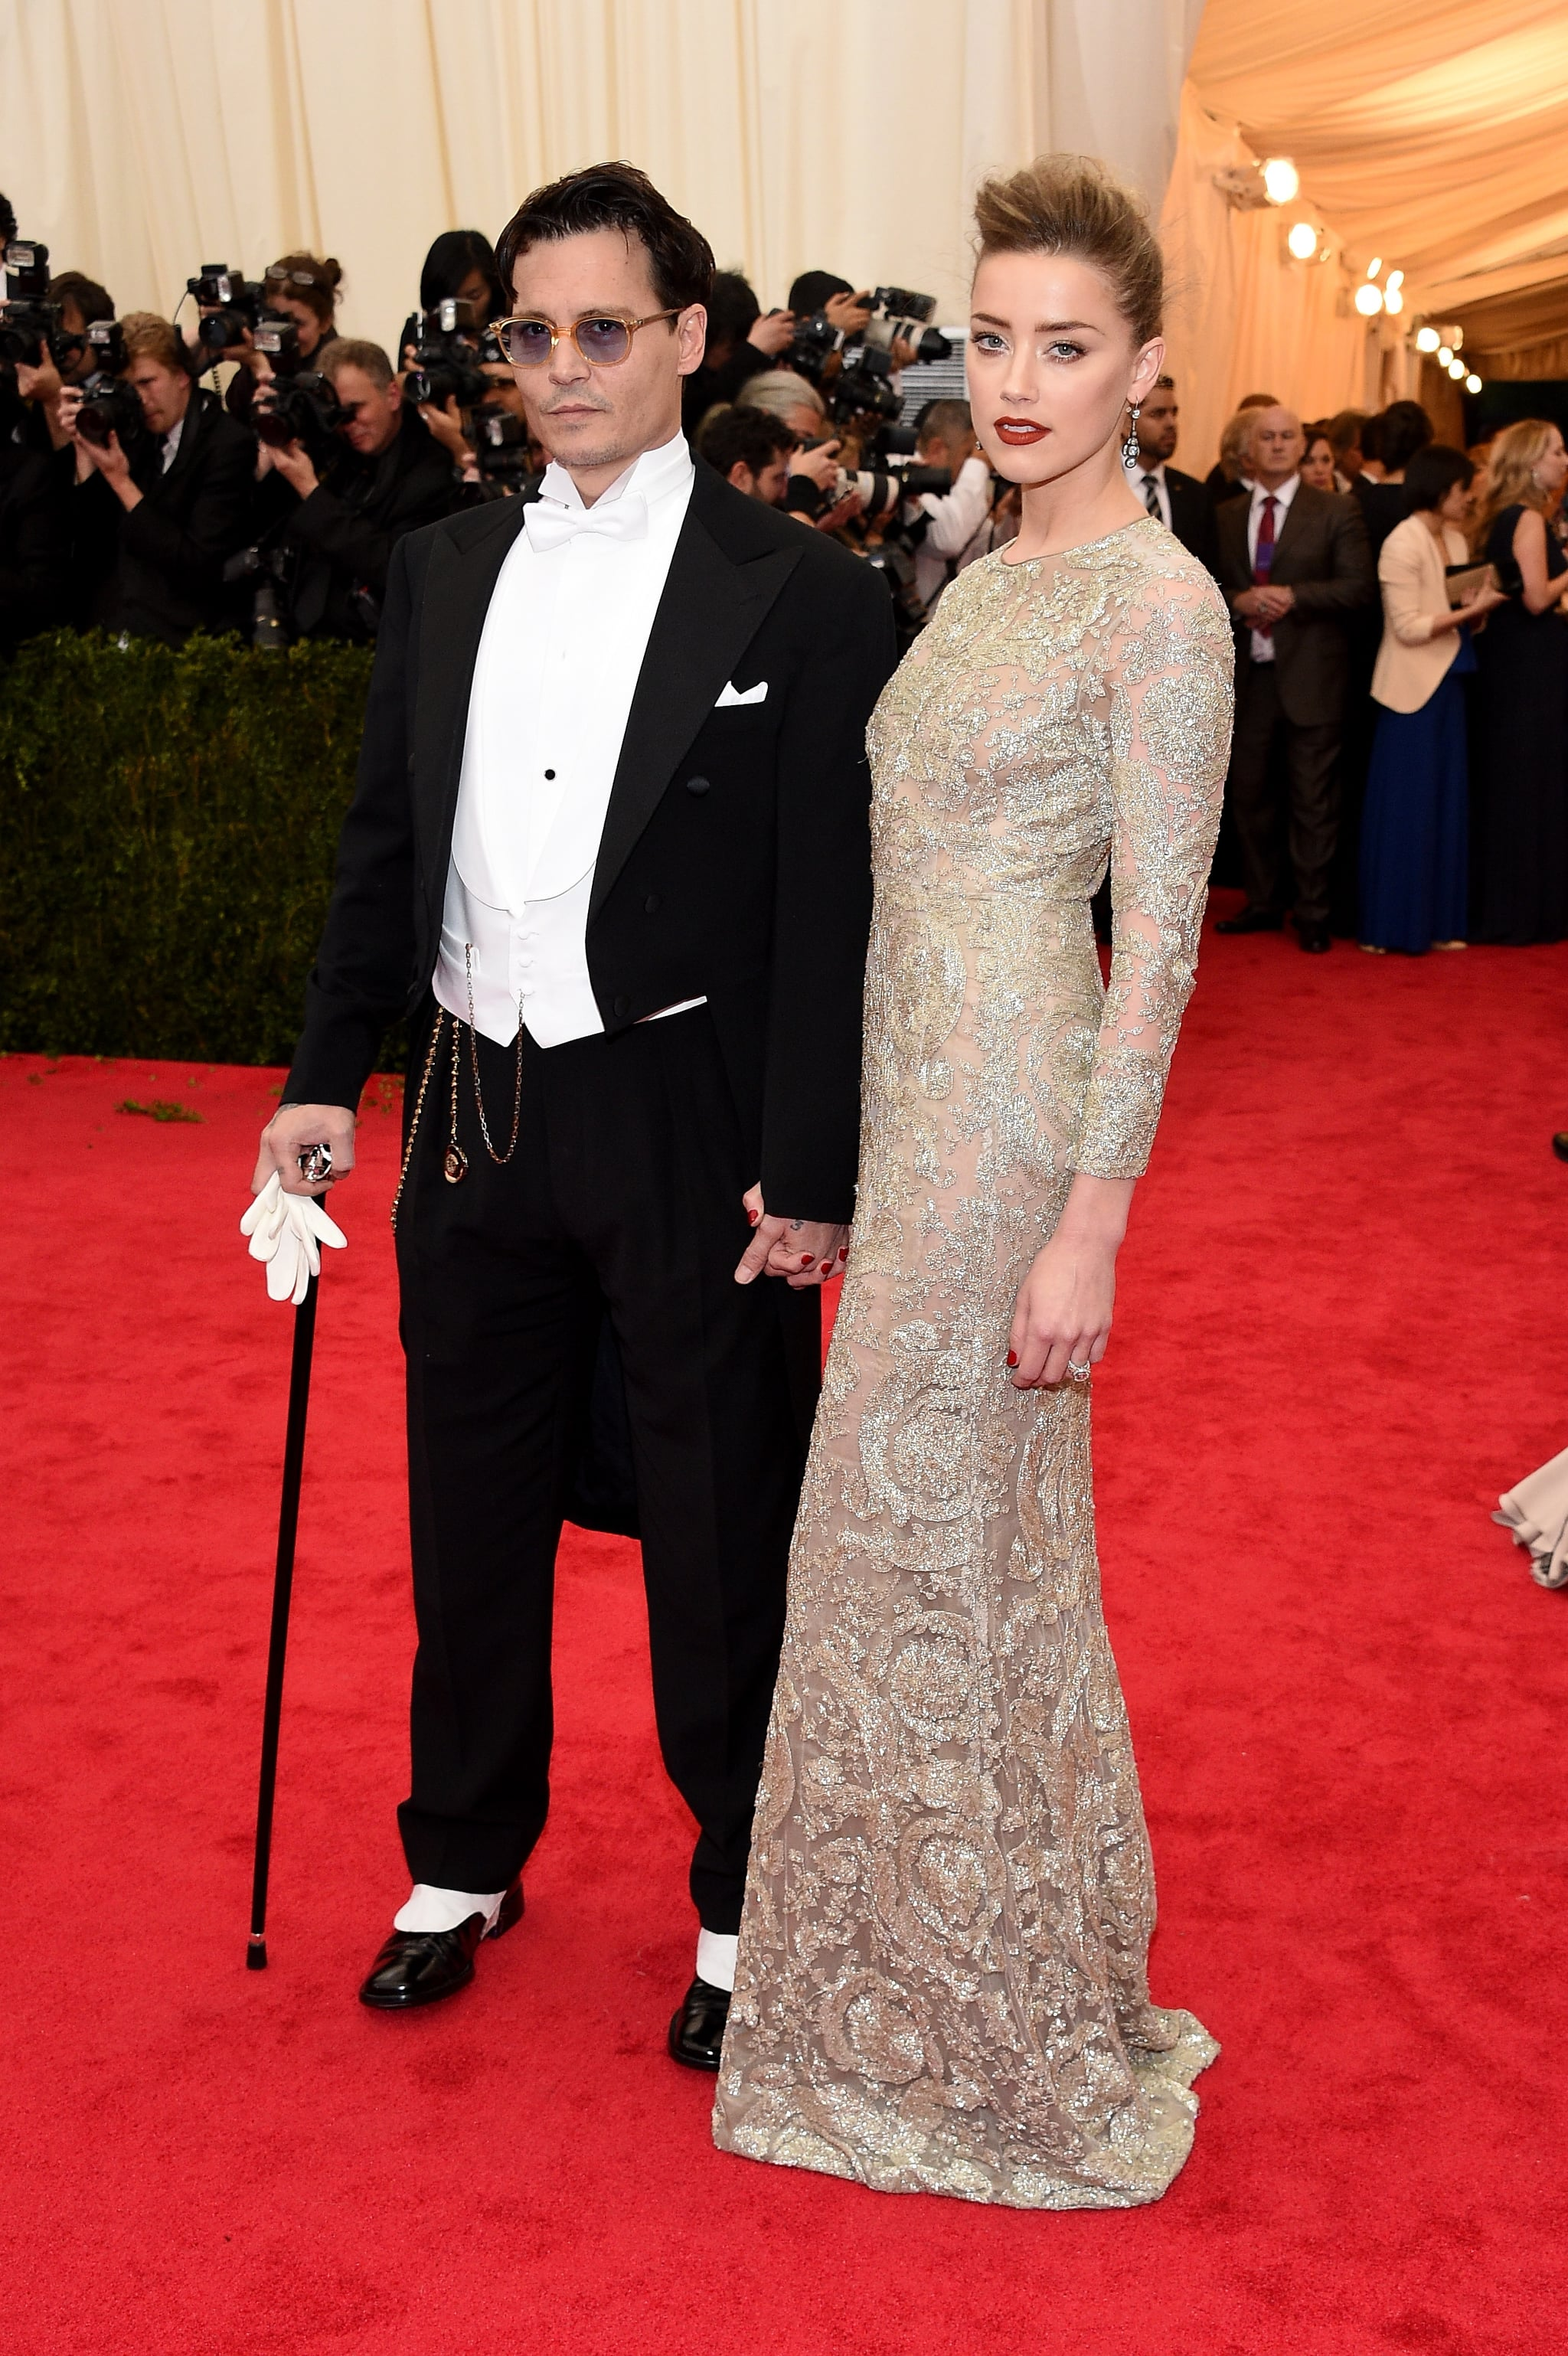 Johnny and Amber Make a Surprise Met Gala Stop